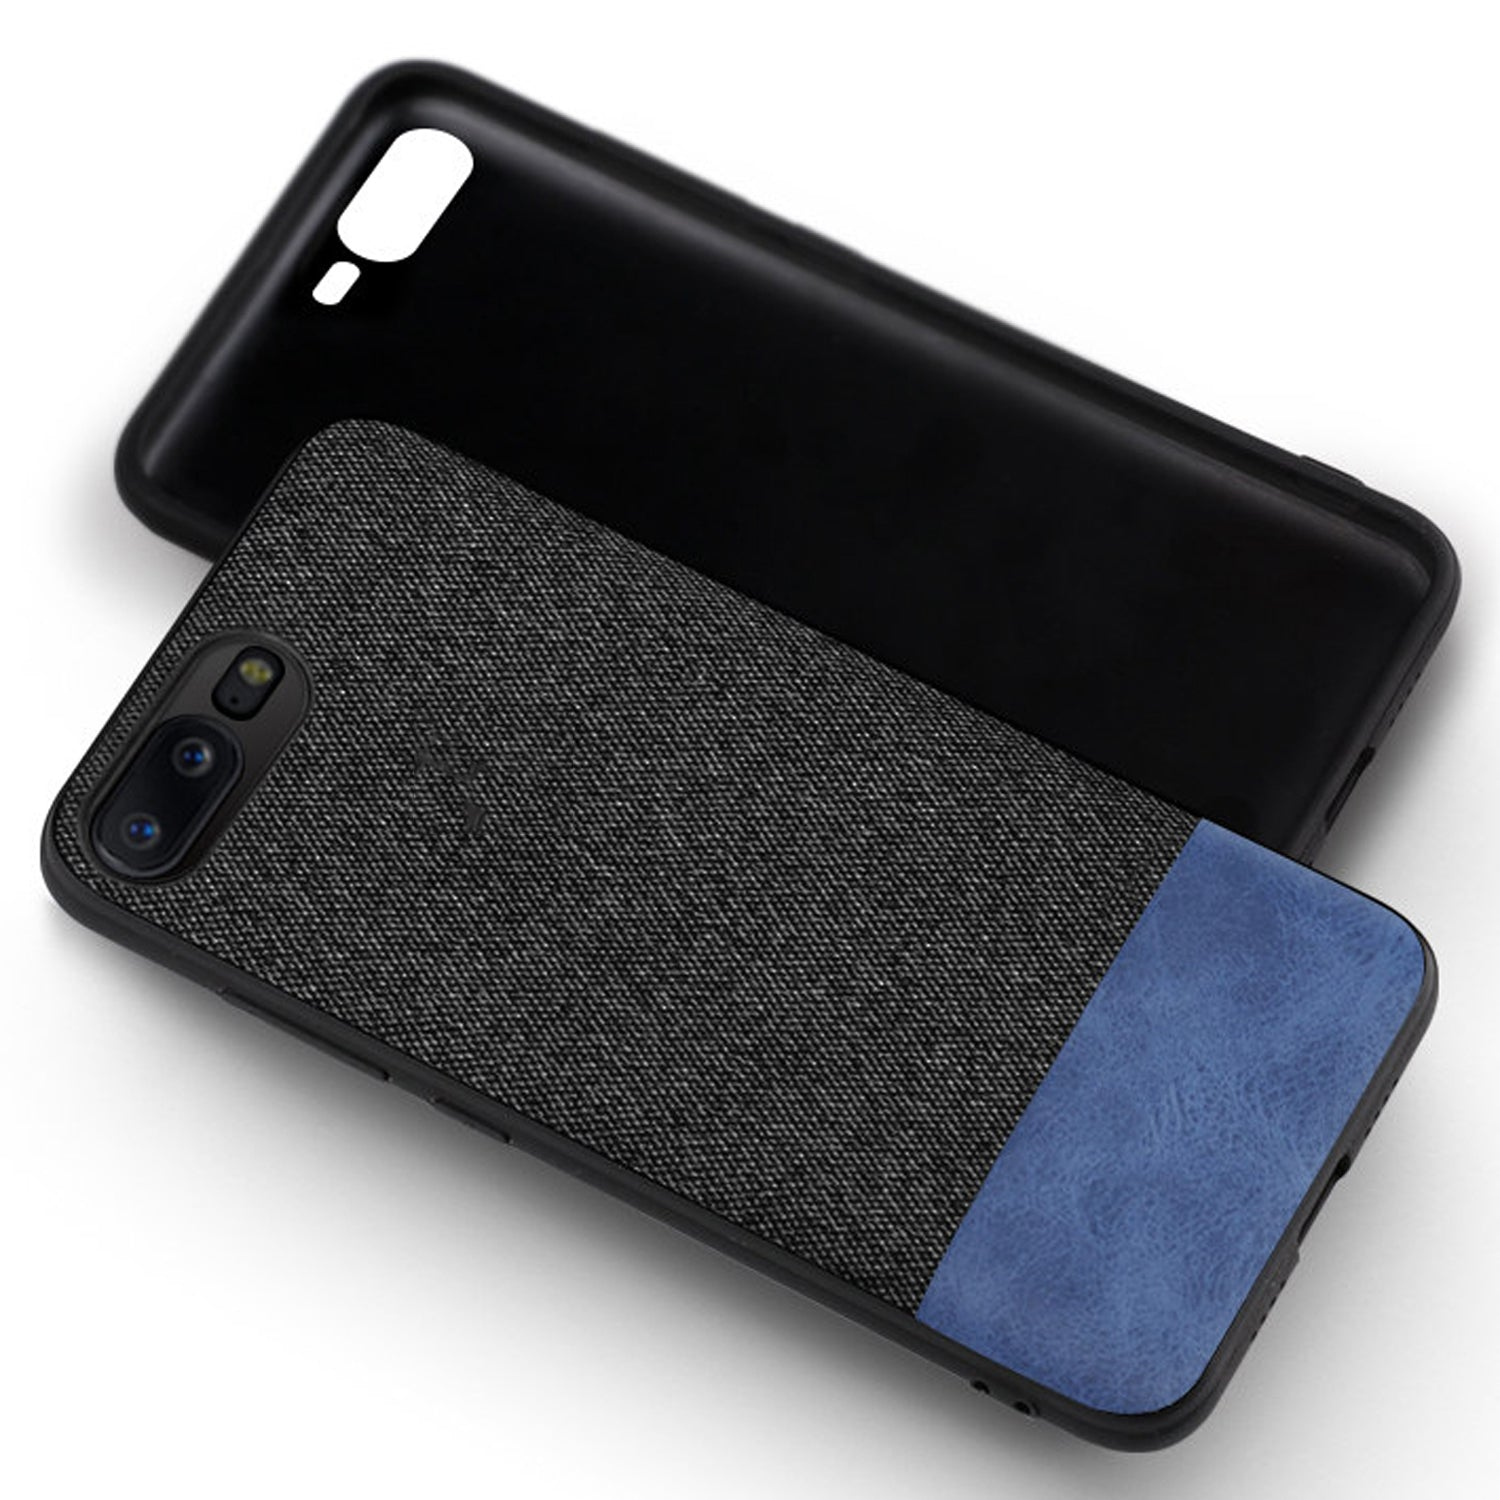 Fabric + Leather Hybrid Protective Case Cover for Oneplus 5 -  Black , Blue - Mobizang